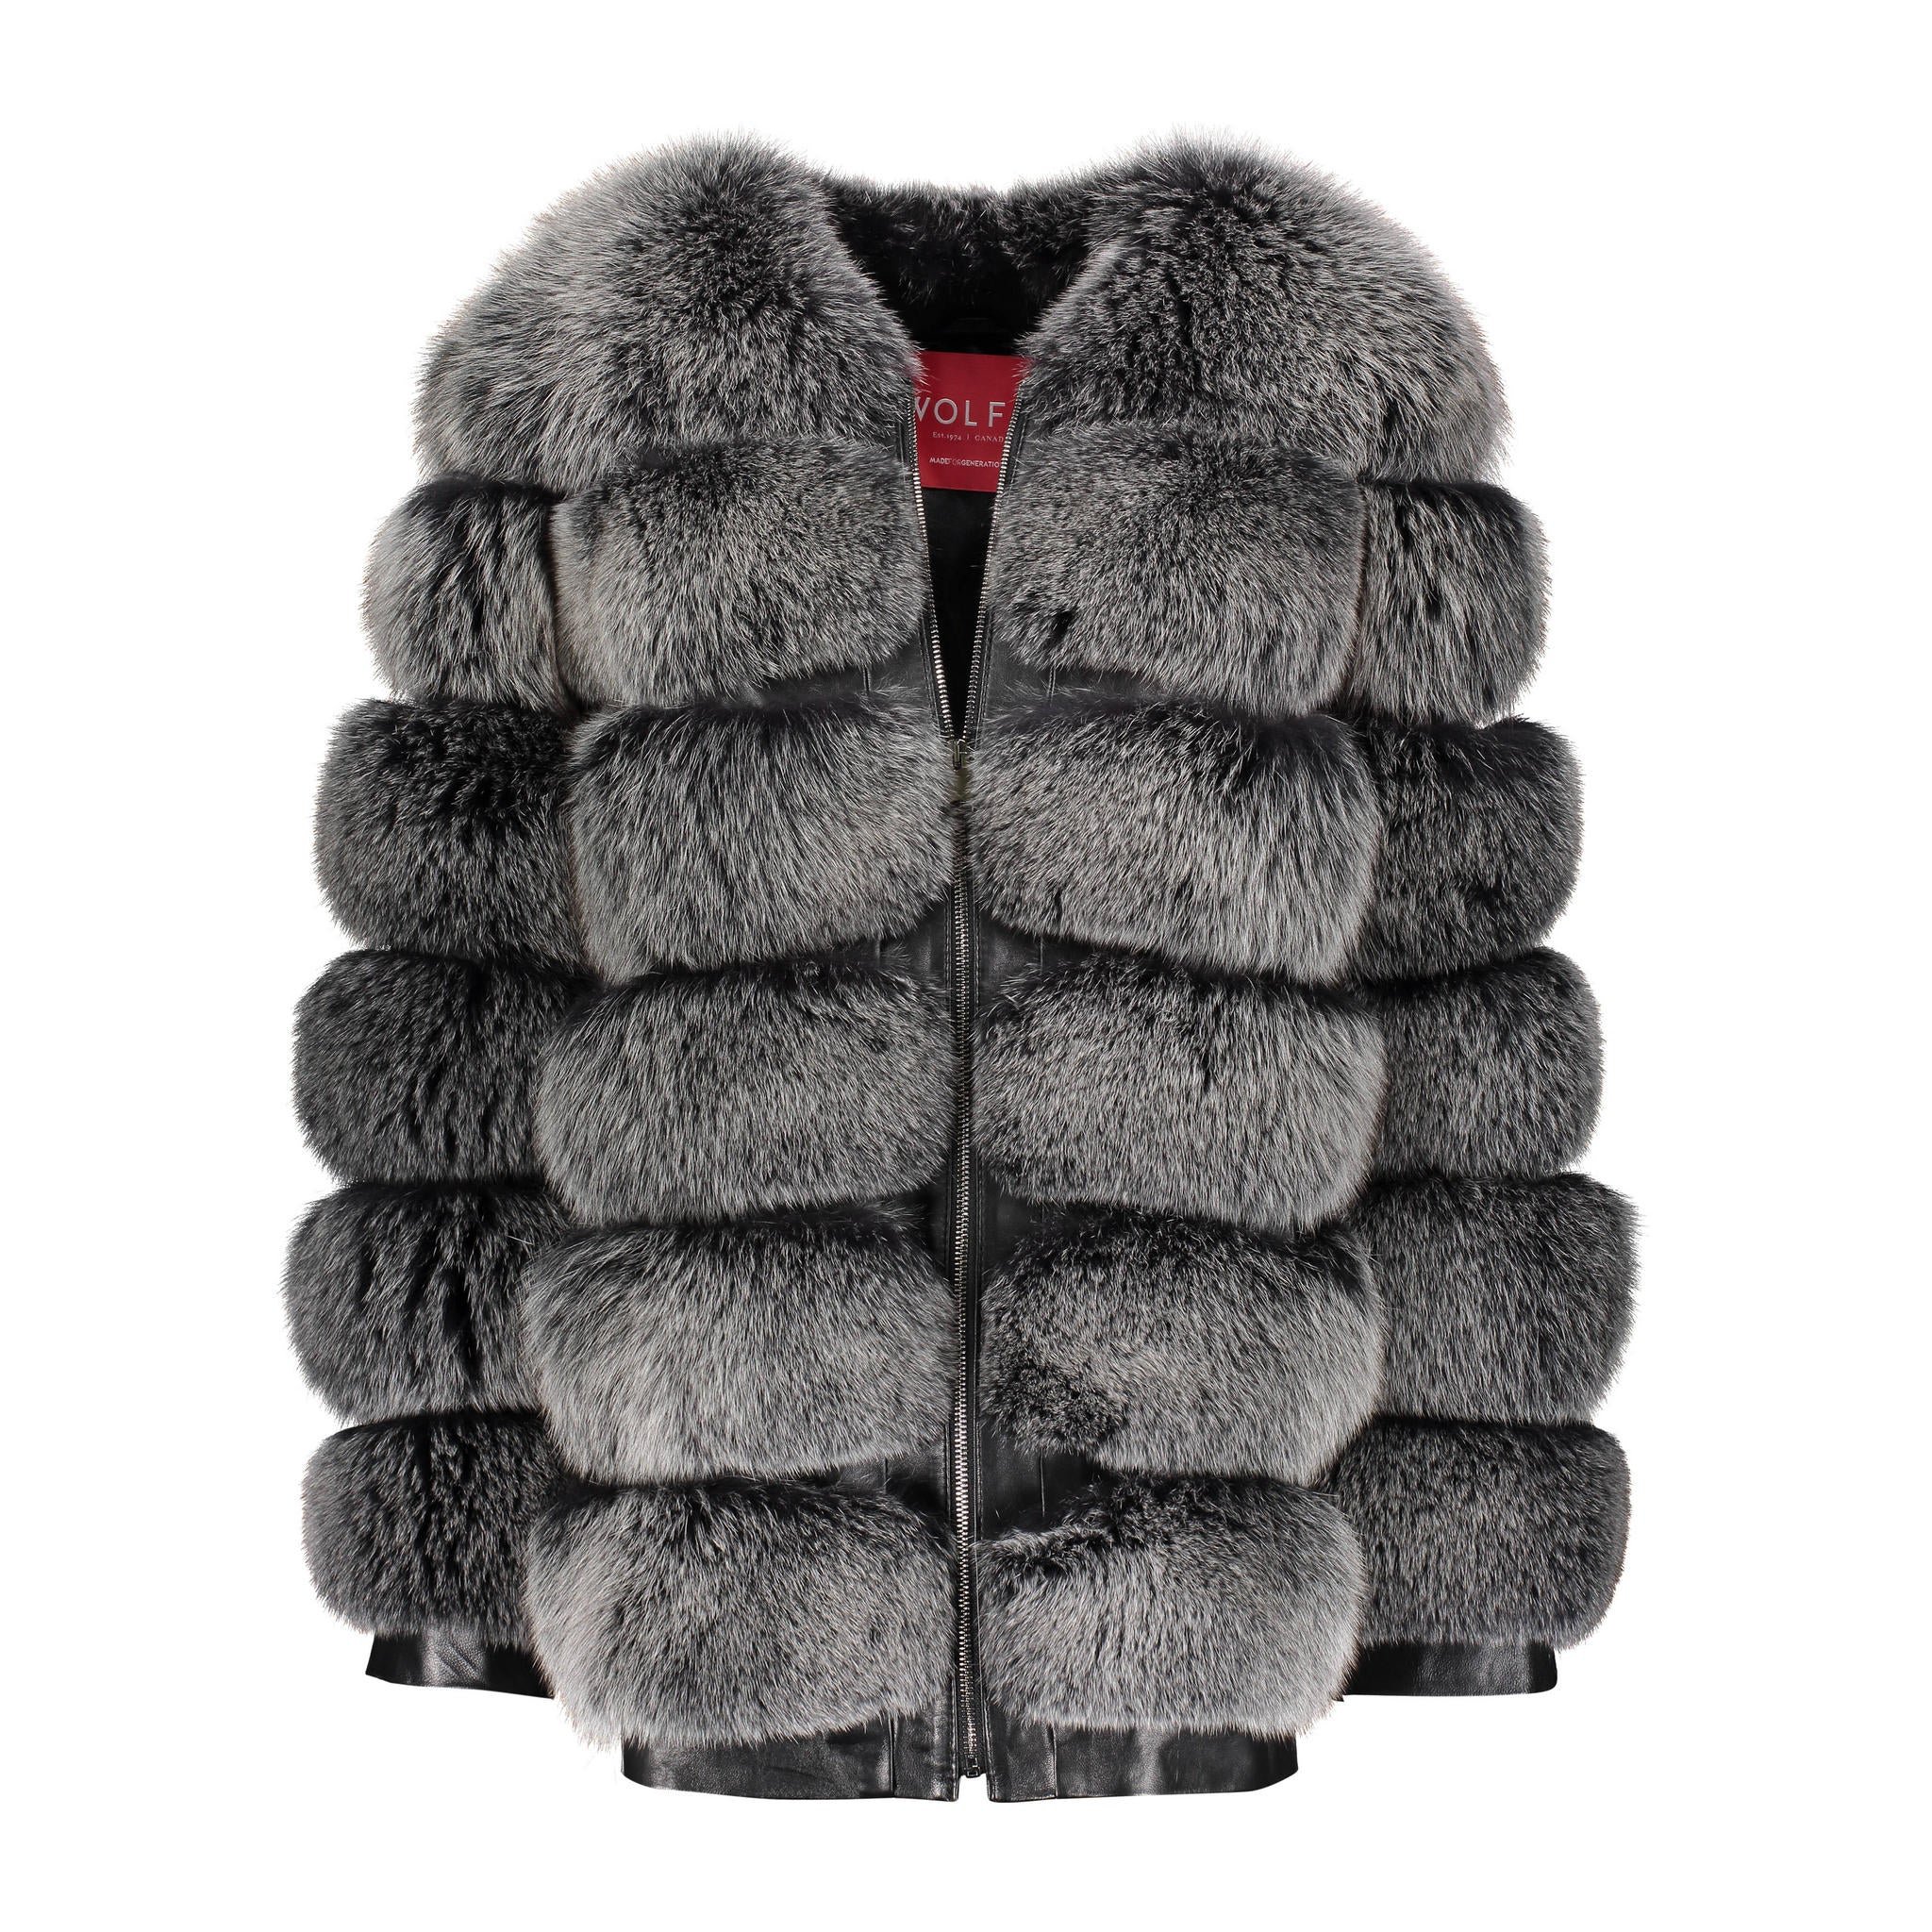 Myrla fox Fur Jacket